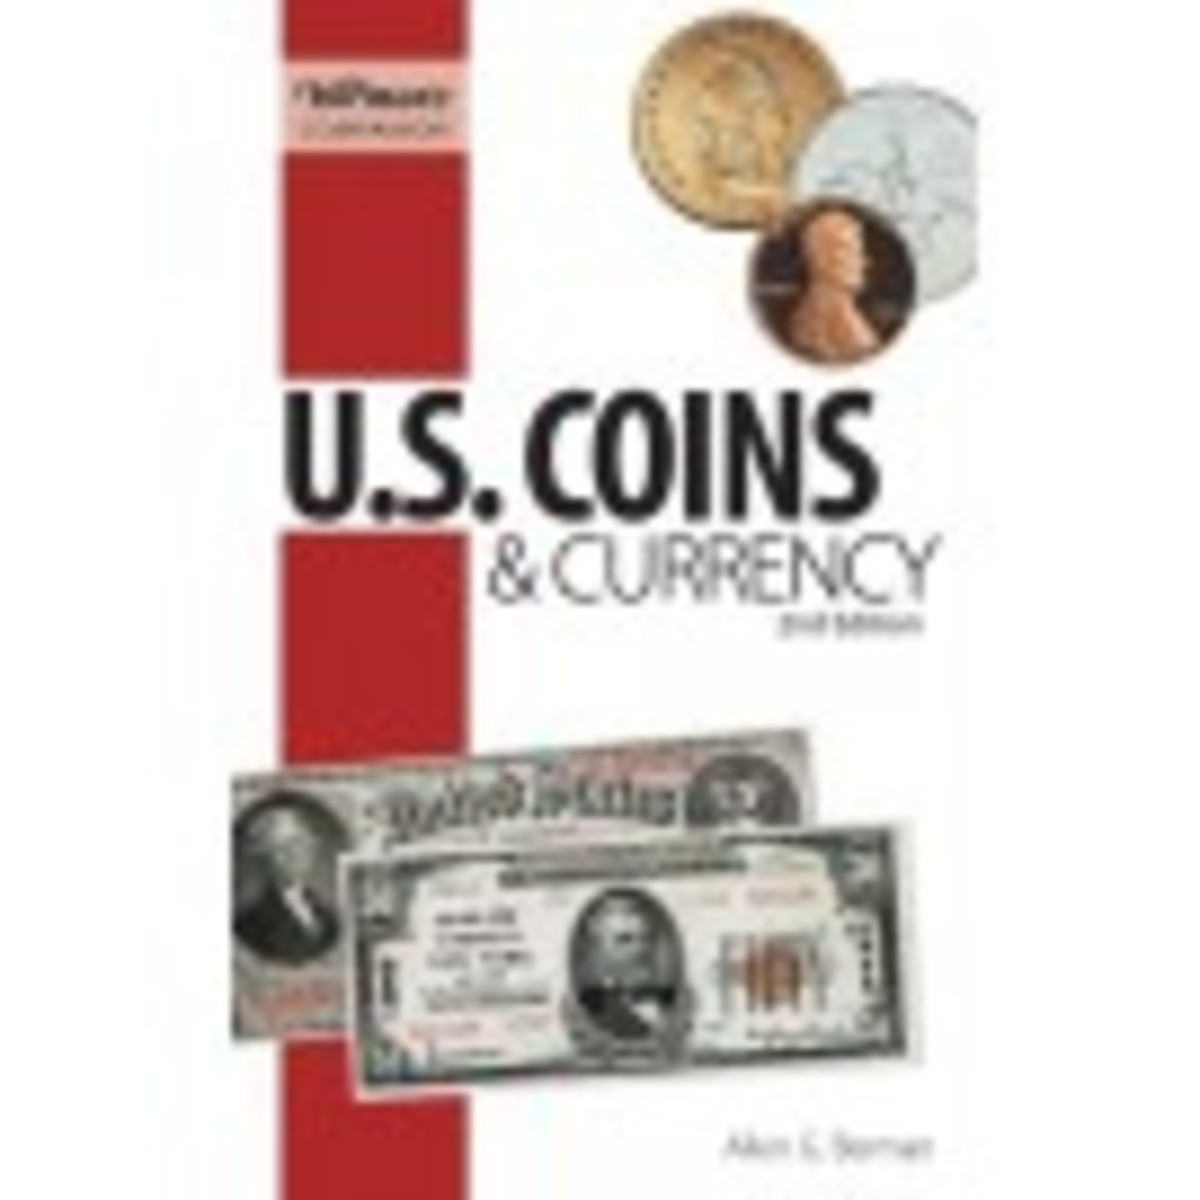 U.S. Coins & Currency